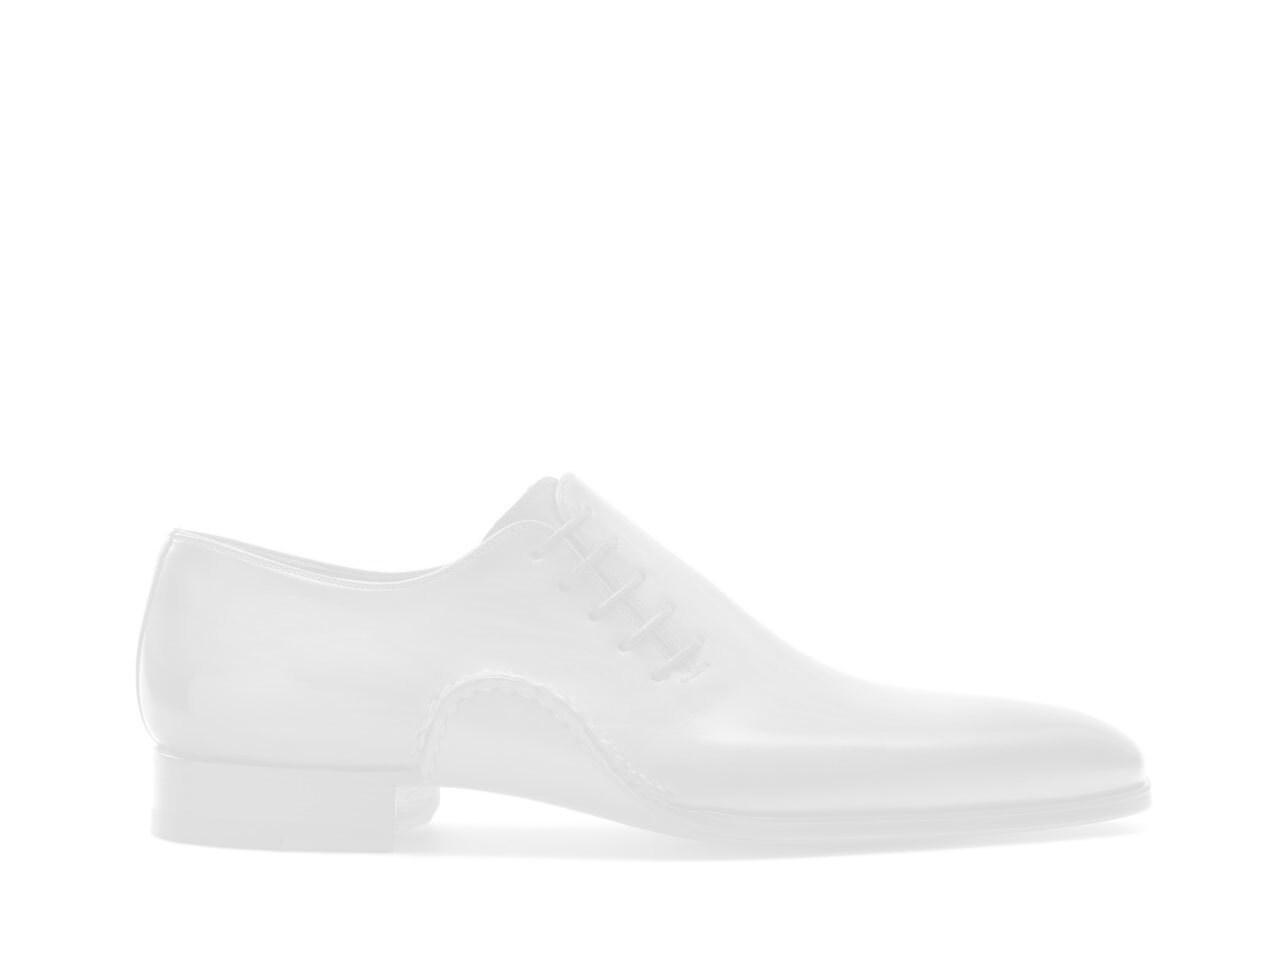 Sole of the Magnanni Nerja White and Cuero Men's Sneakers